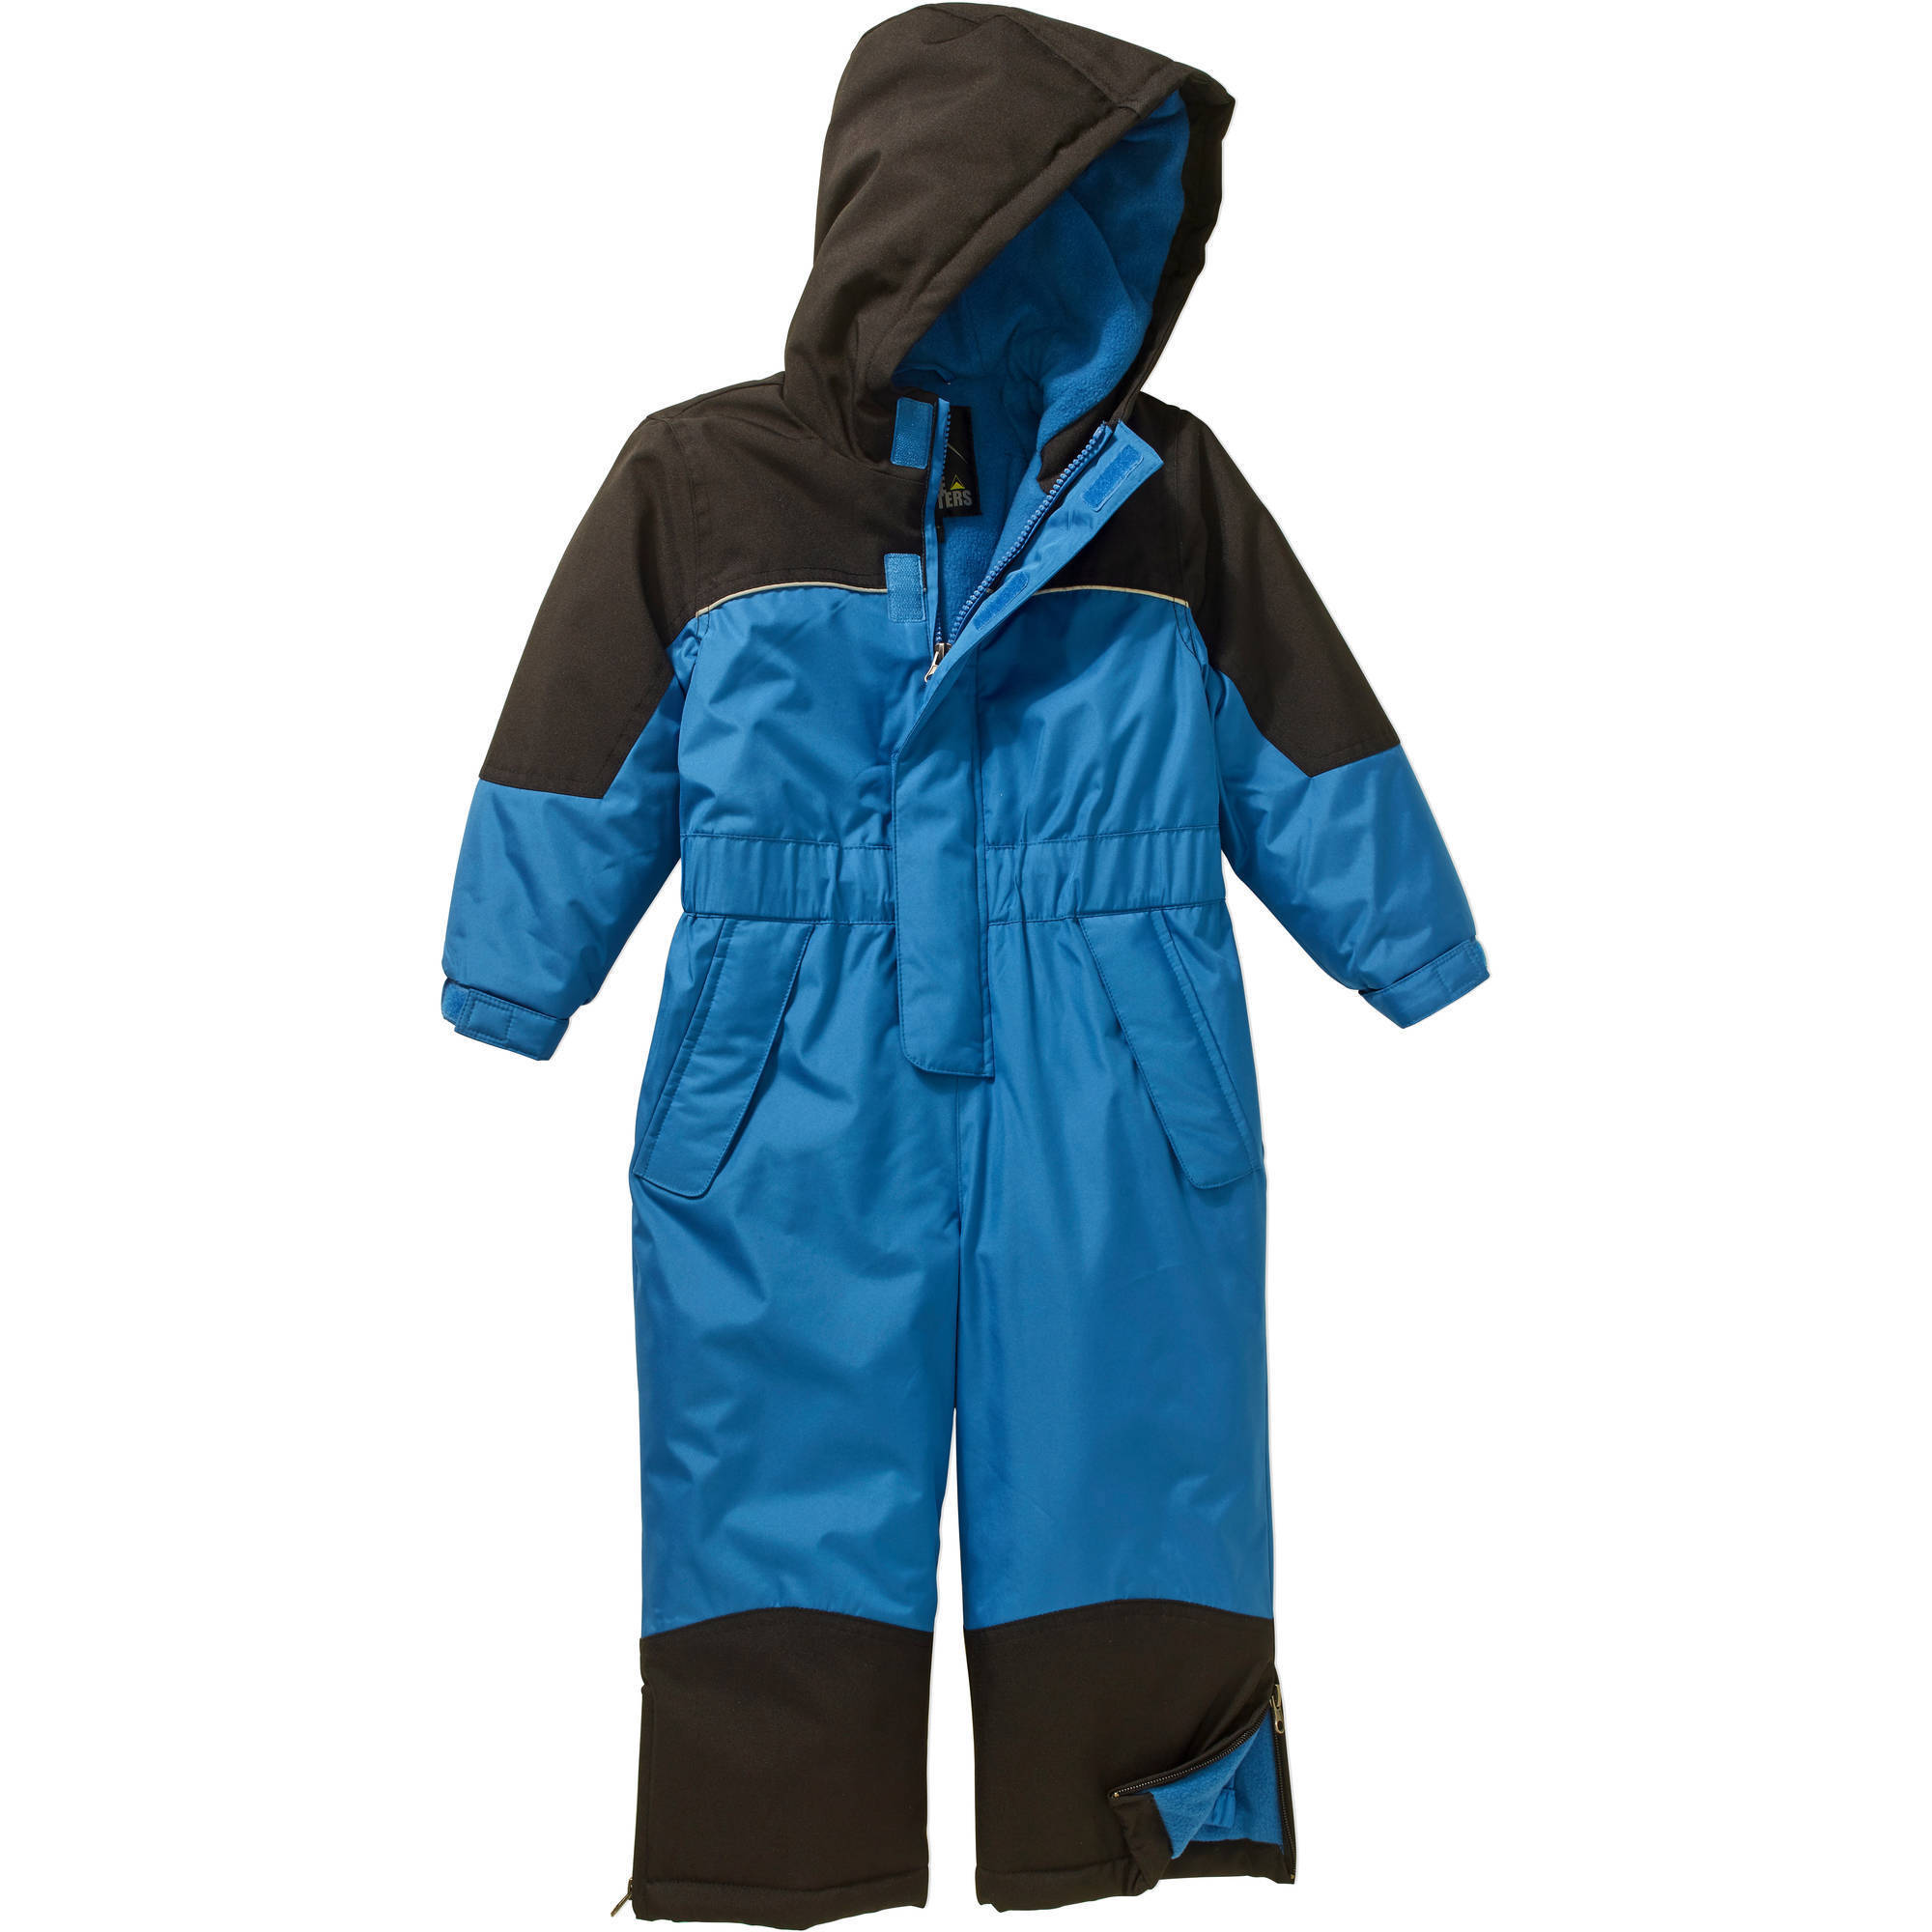 Baby Toddler Boy Ski/Snowboard Full Body Snowsuit - Walmart.com